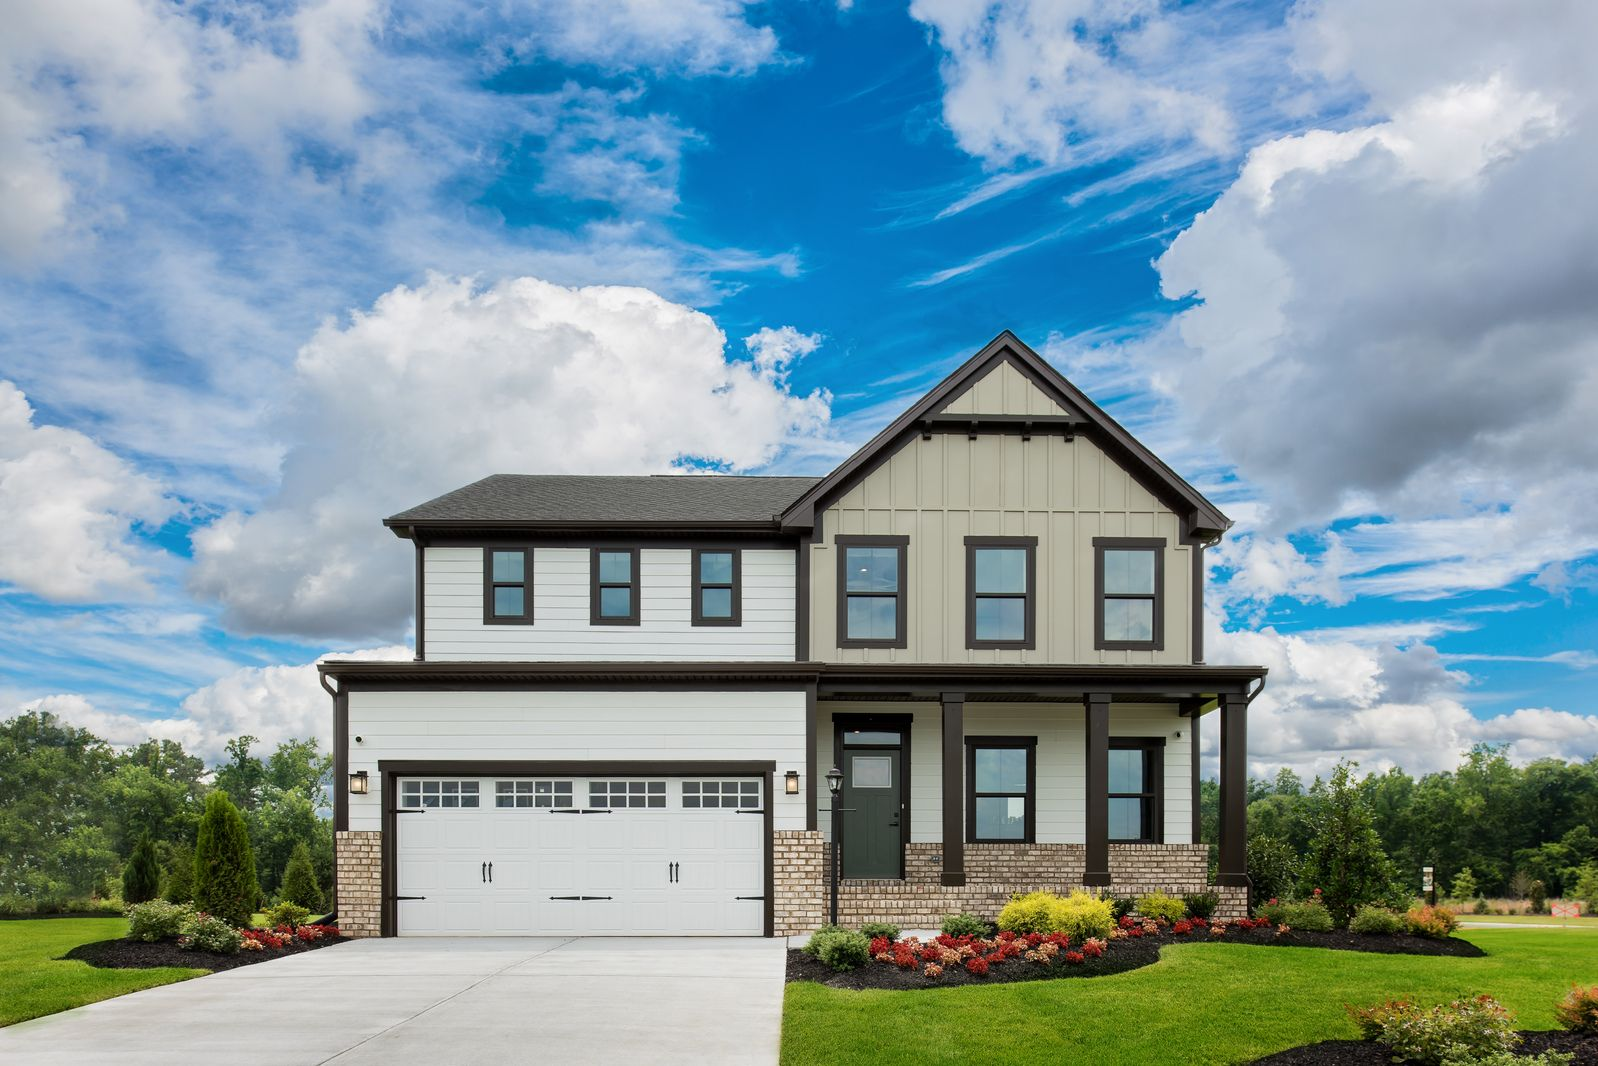 NEW HOMESITES in Atlee High School District!:Welcome to Giles: Hanover county's premier community of artfully-designed homes, and million-dollar amenities, and top-ranked schools.Schedule your tour now!